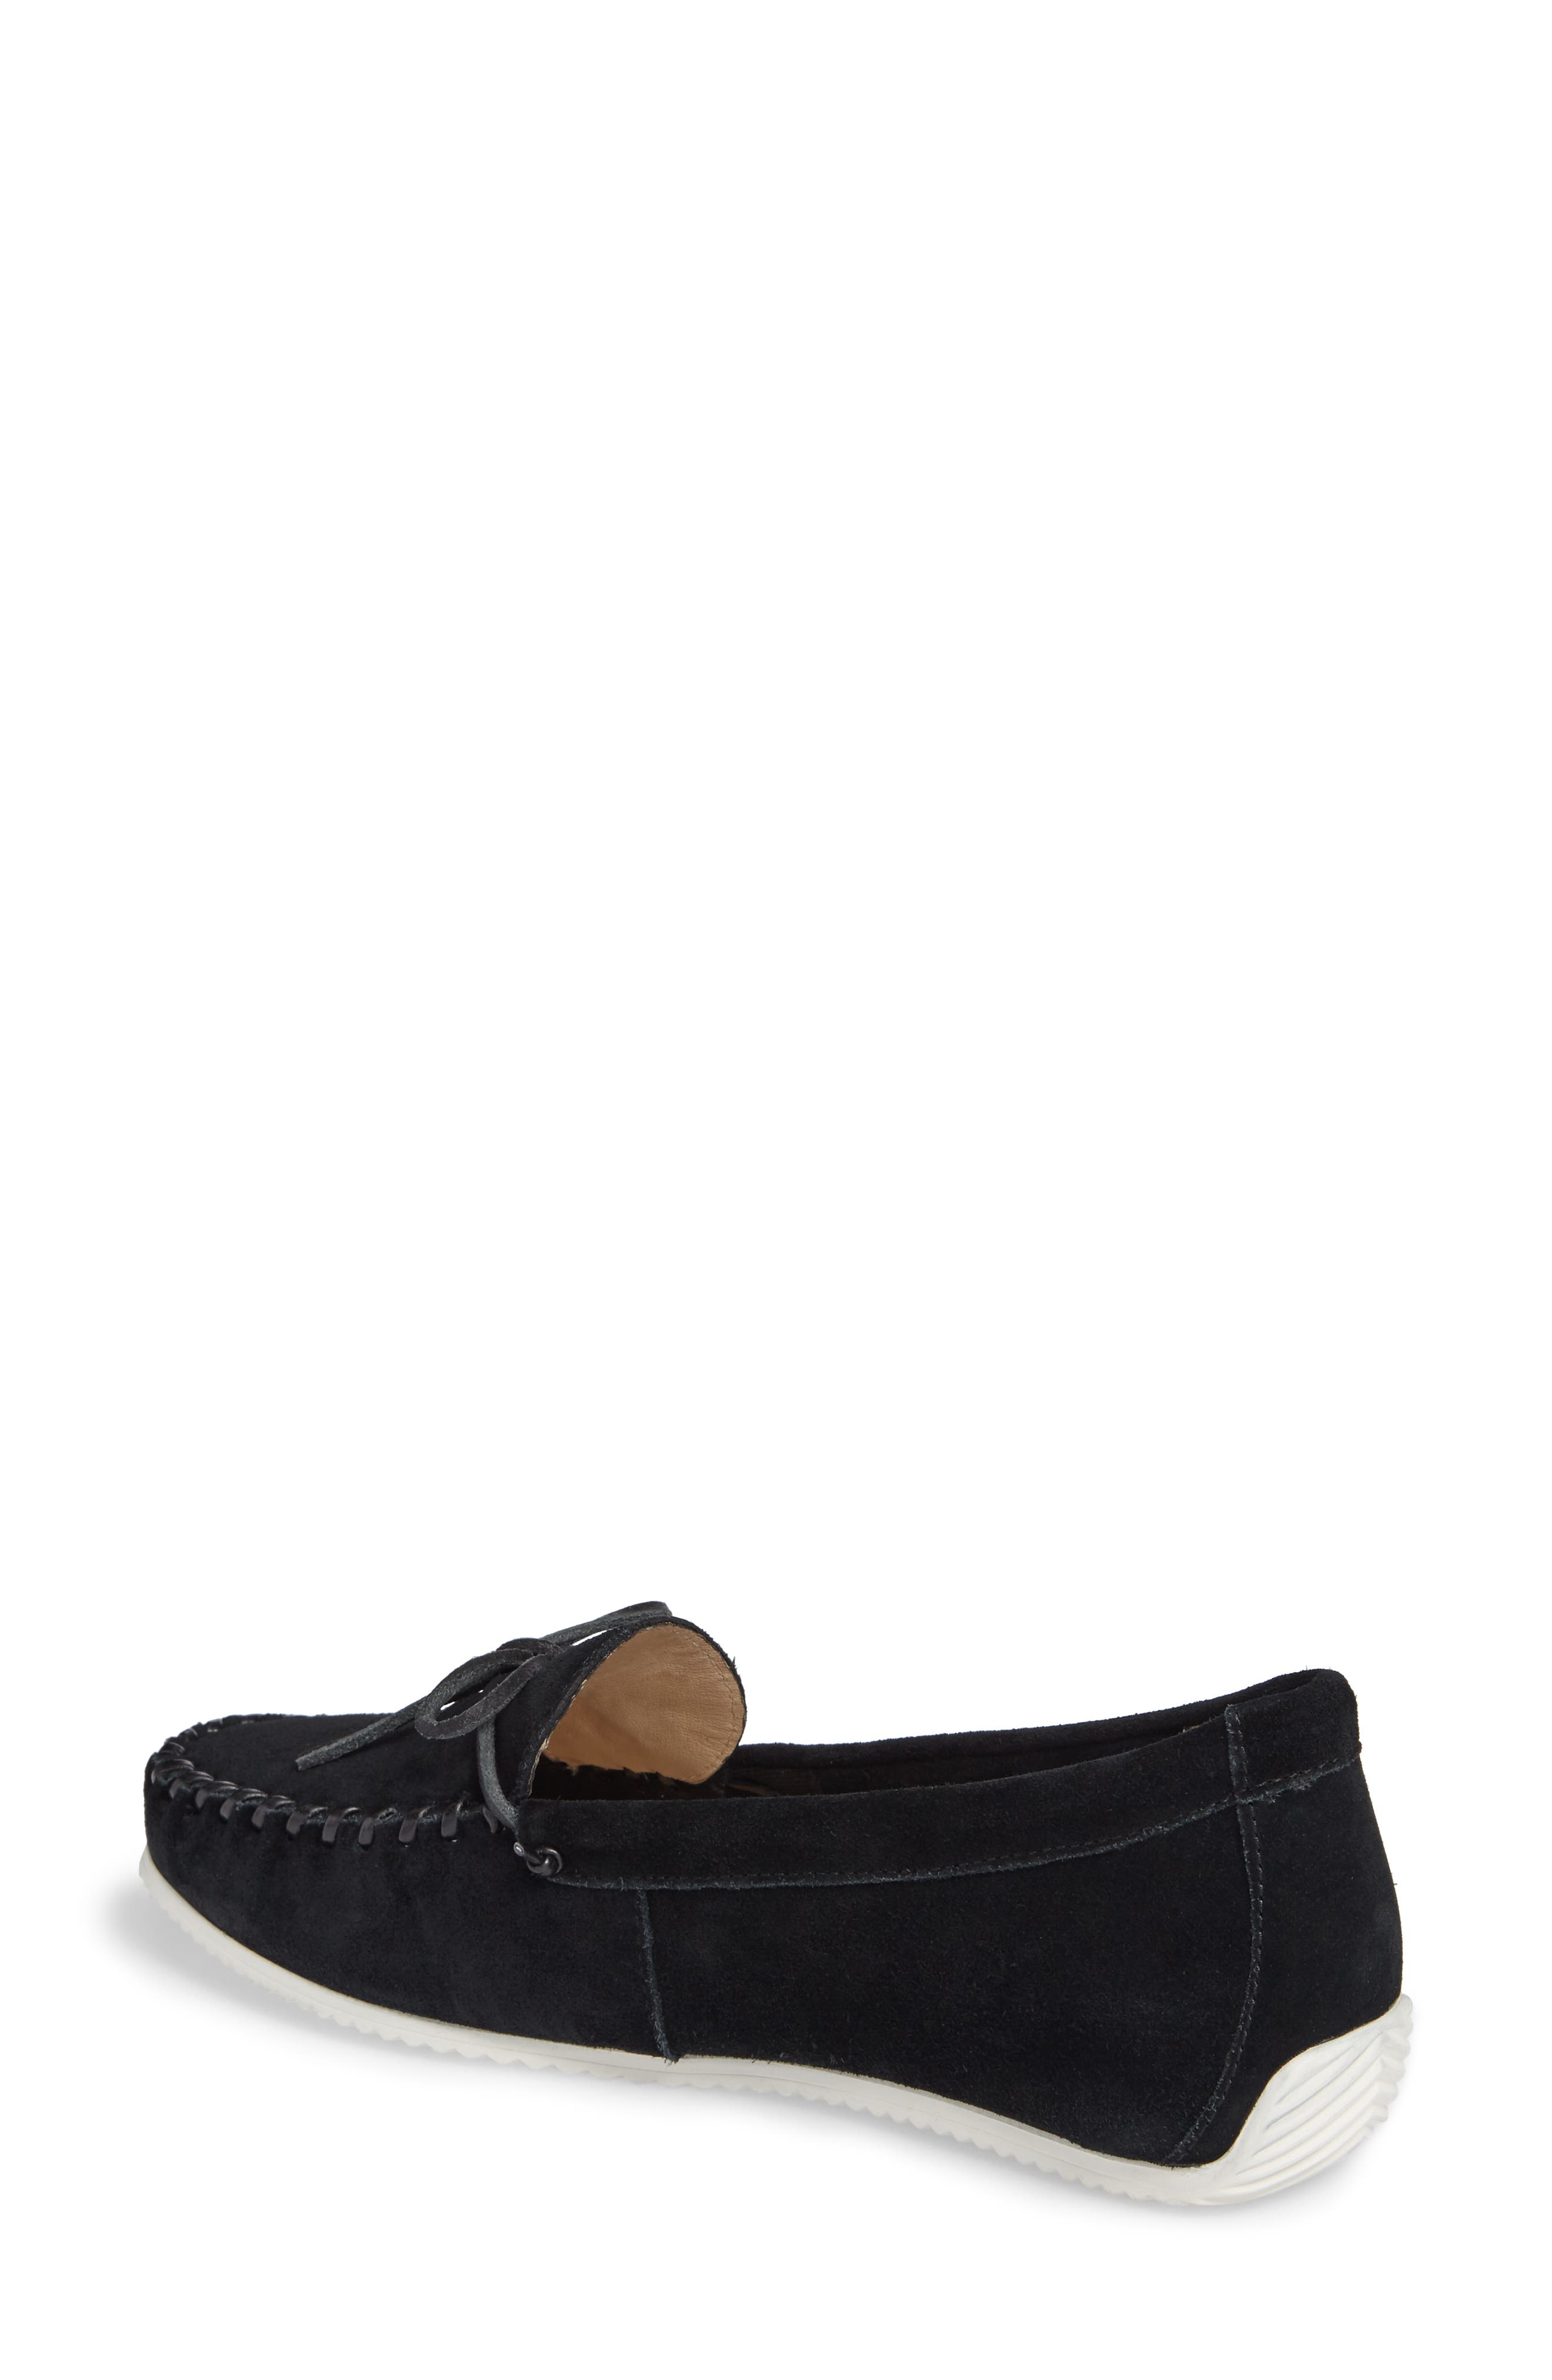 Larghetto Carine Concealed Wedge Moccasin,                             Alternate thumbnail 2, color,                             Black Suede